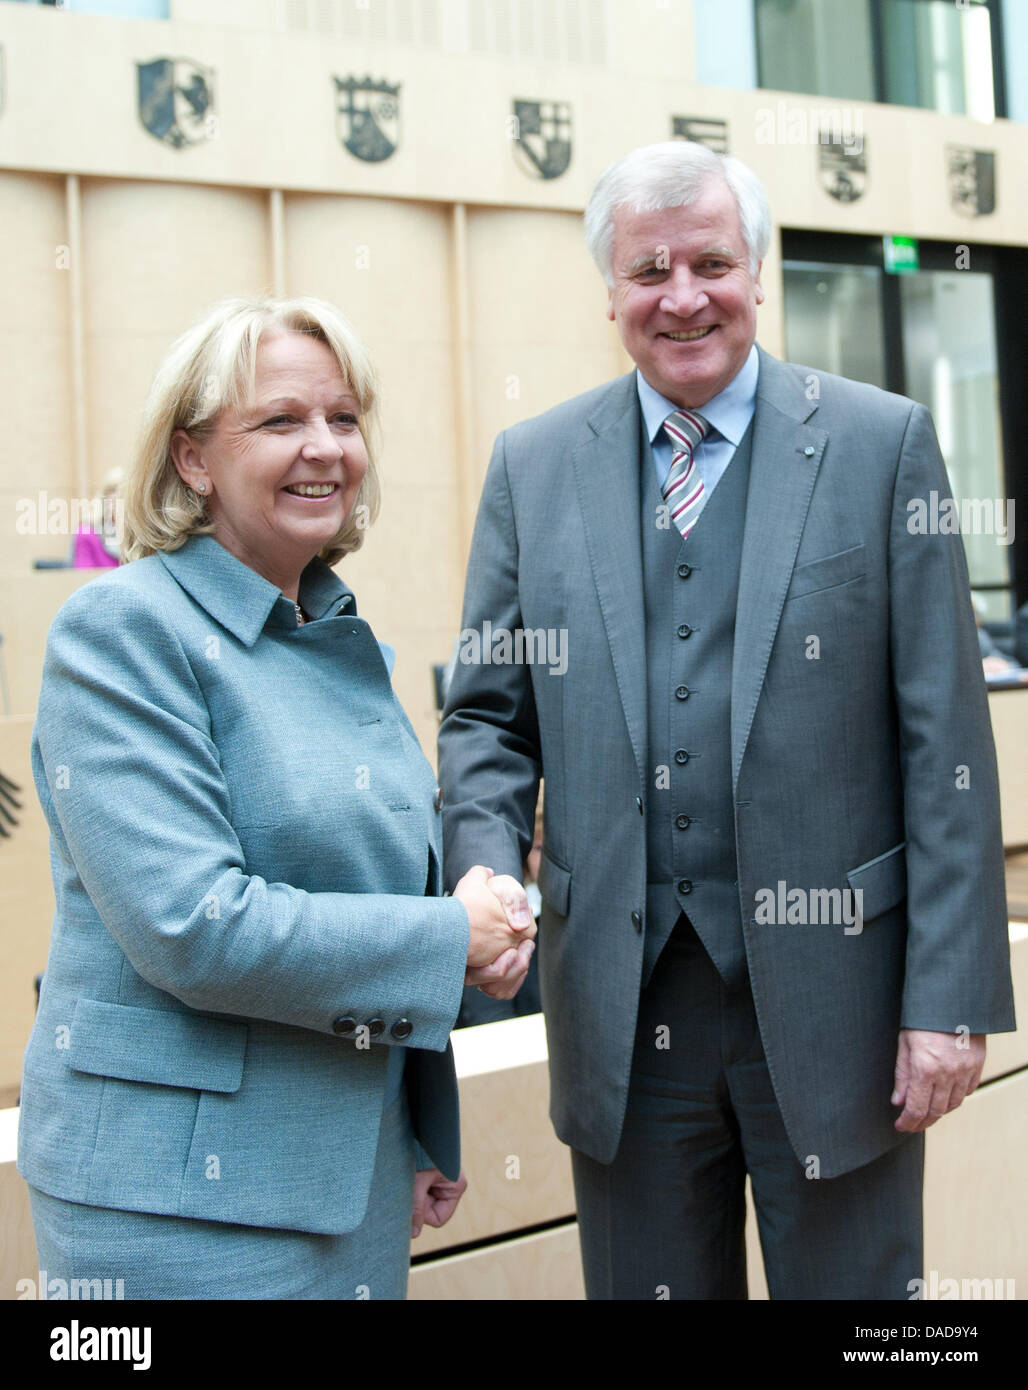 North-Rhine Westphalian Prime Minister Hannelore Kraft congratulates Bavarian Prime Minister Horst Seehofer on his - Stock Image